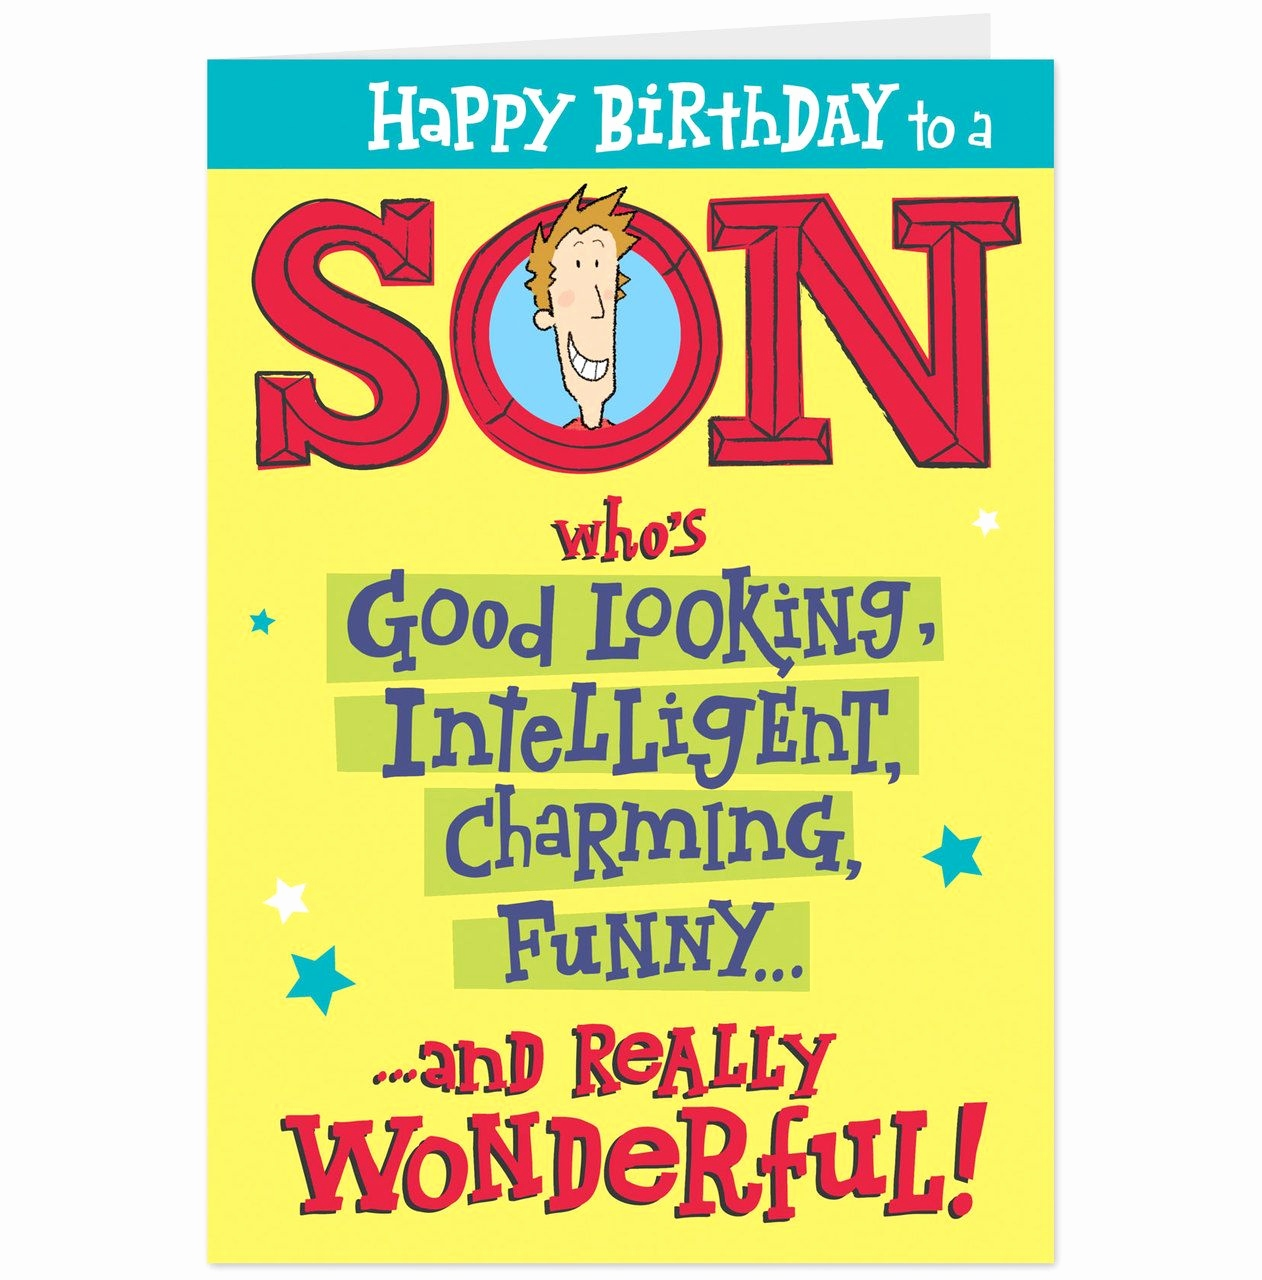 happy birthday son clipart ; happy-birthday-quotes-for-a-son-beautiful-funny-happy-birthday-quotes-for-son-happy-free-download-funny-cute-of-happy-birthday-quotes-for-a-son